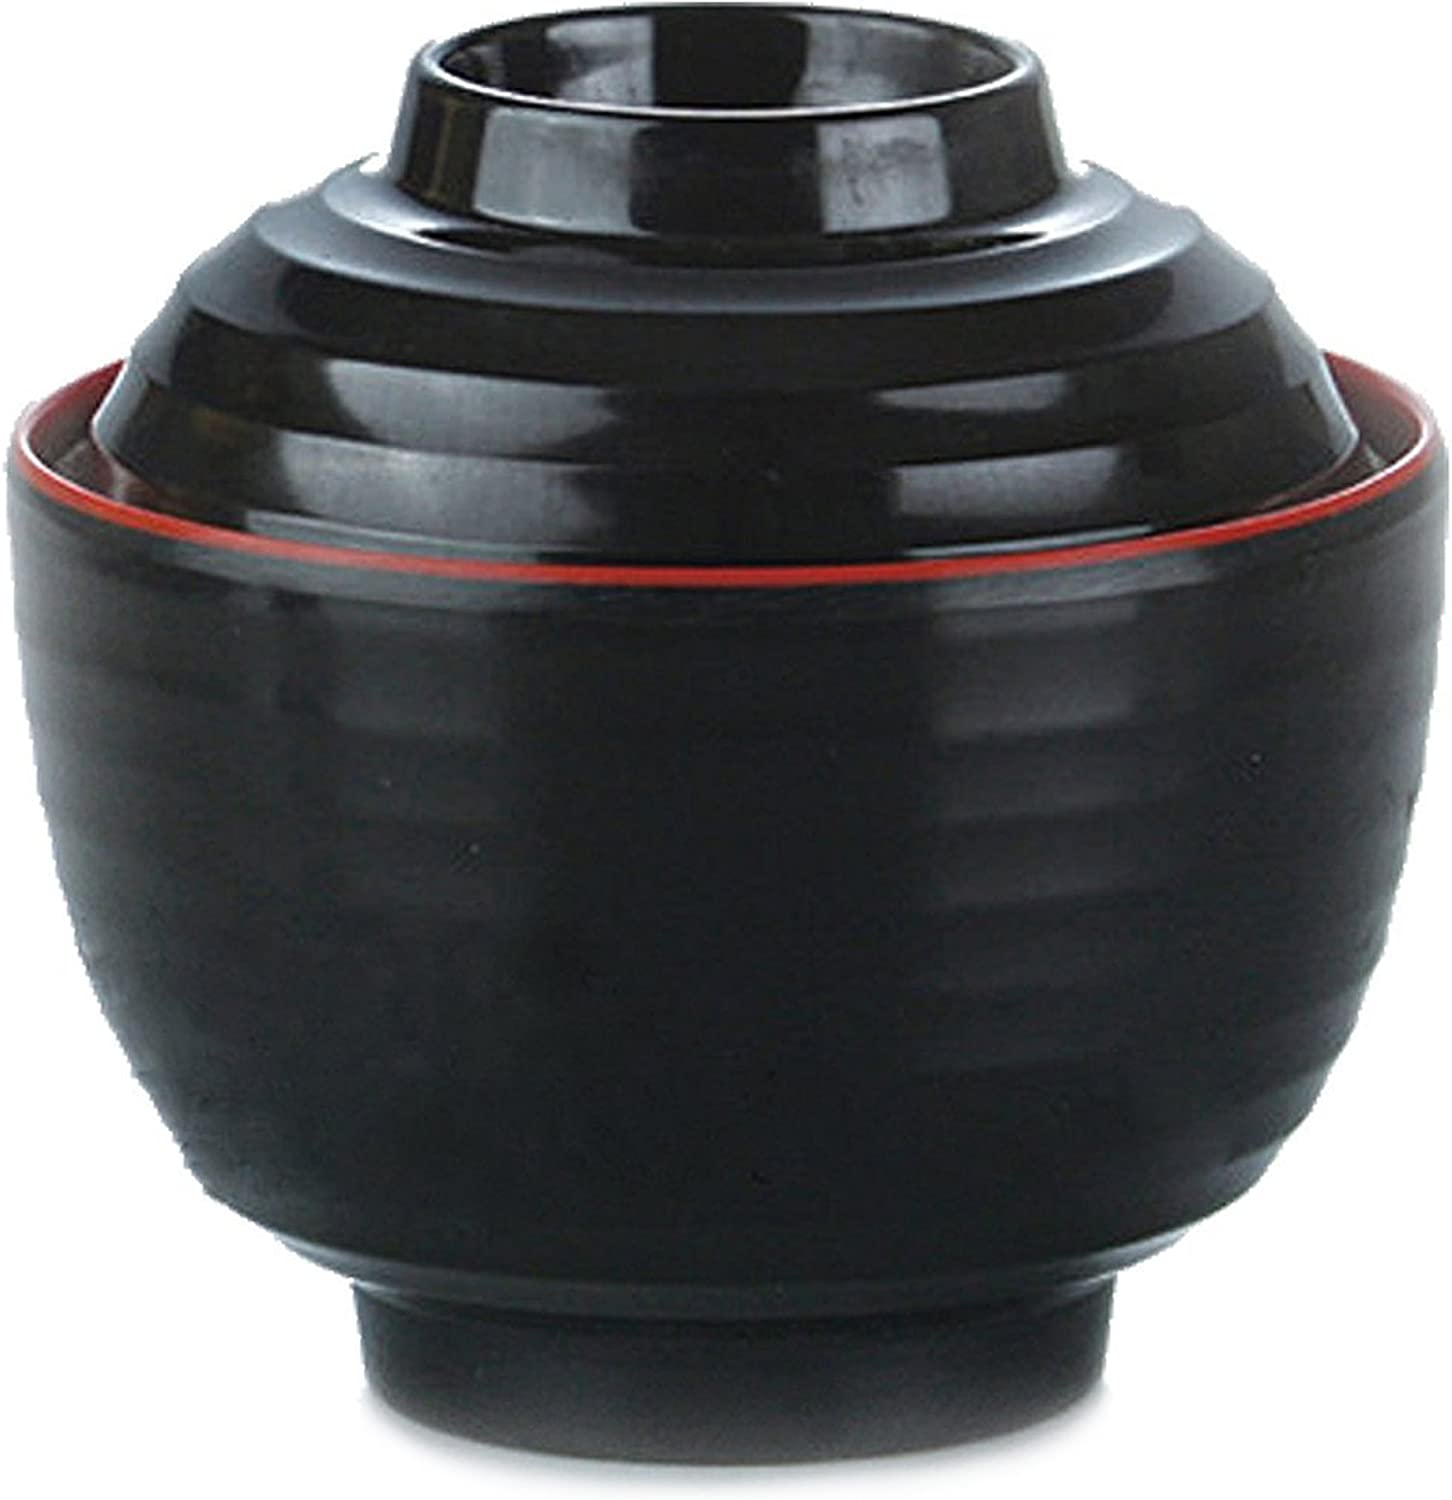 Japanese Melamine ?????? Miso Soup Rice Bowls With Lid (B11894) ~ We Pay Your Sales Tax